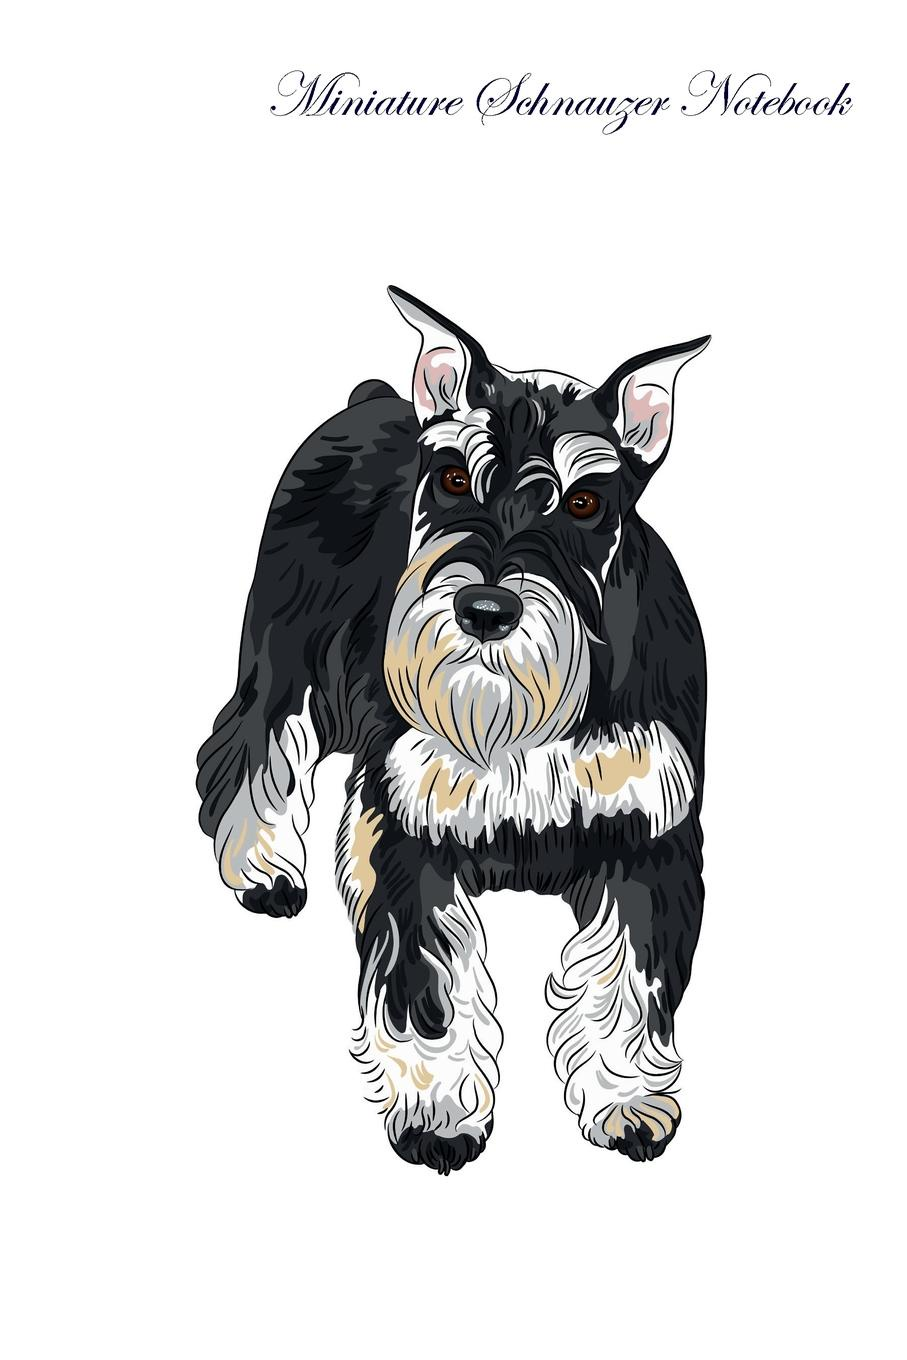 Pet Care Inc. Miniature Schnauzer Notebook Record Journal, Diary, Special Memories, To Do List, Academic Notepad, and Much More pet care inc pembroke welsh corgi notebook record journal diary special memories to do list academic notepad and much more